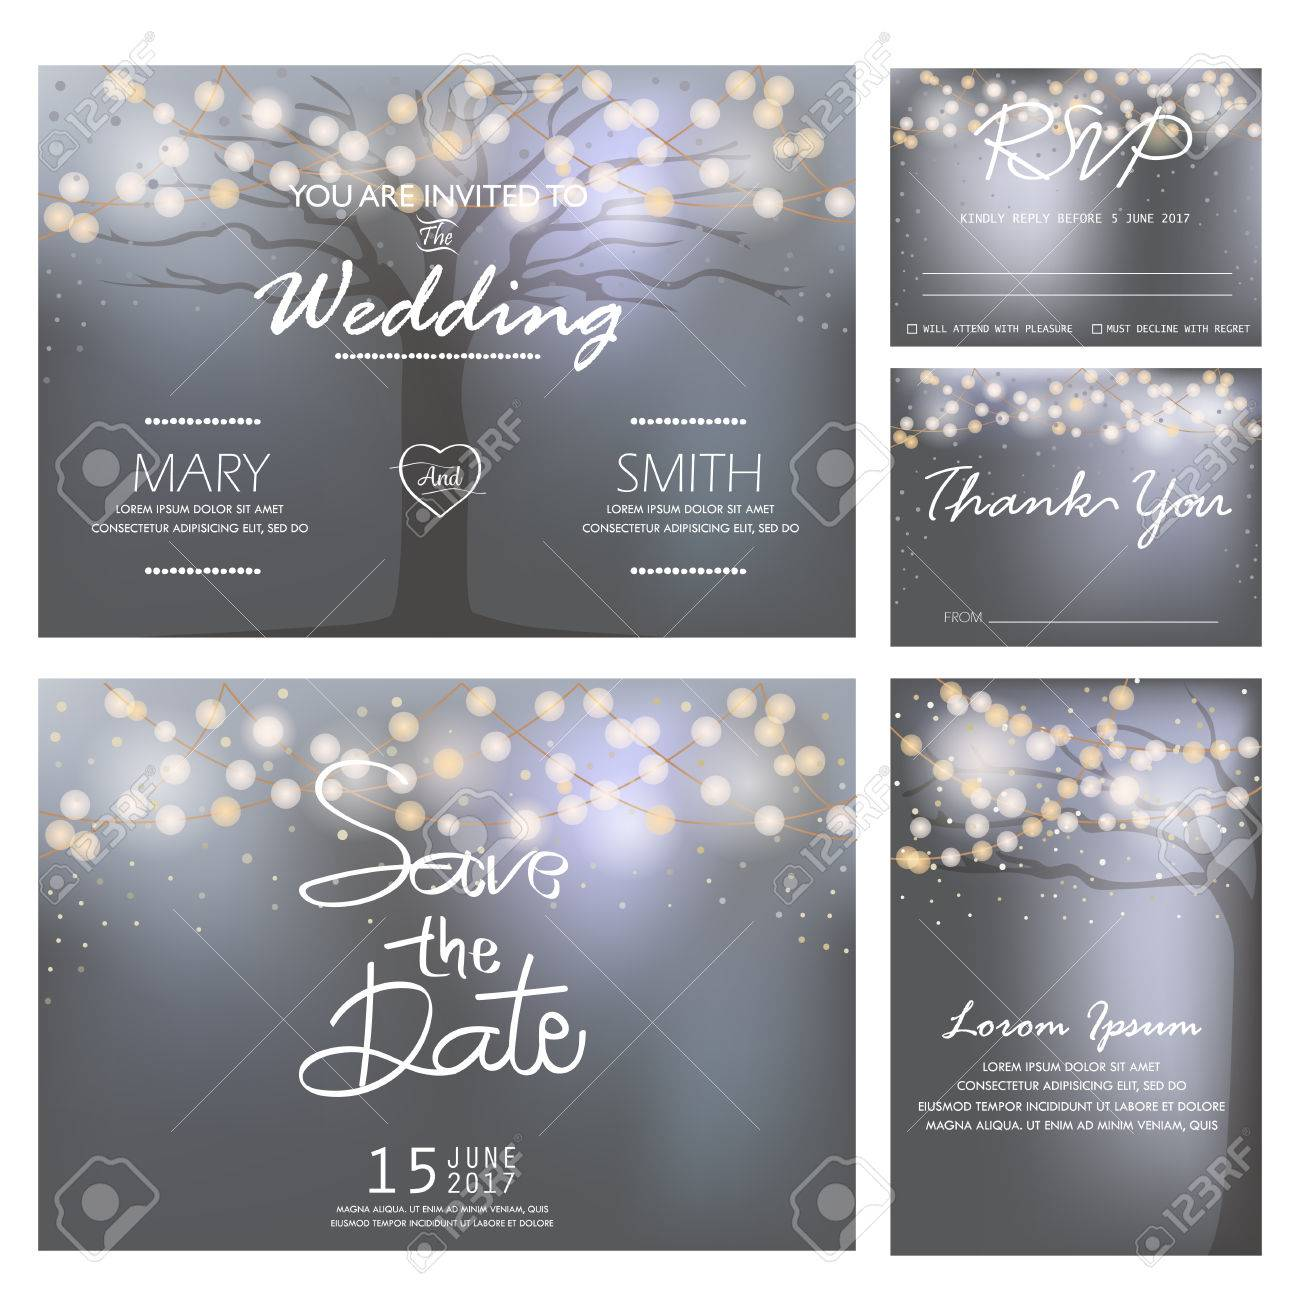 wedding invitation, RSVP, and Thank you card templates,light and tree concept. - 53611247